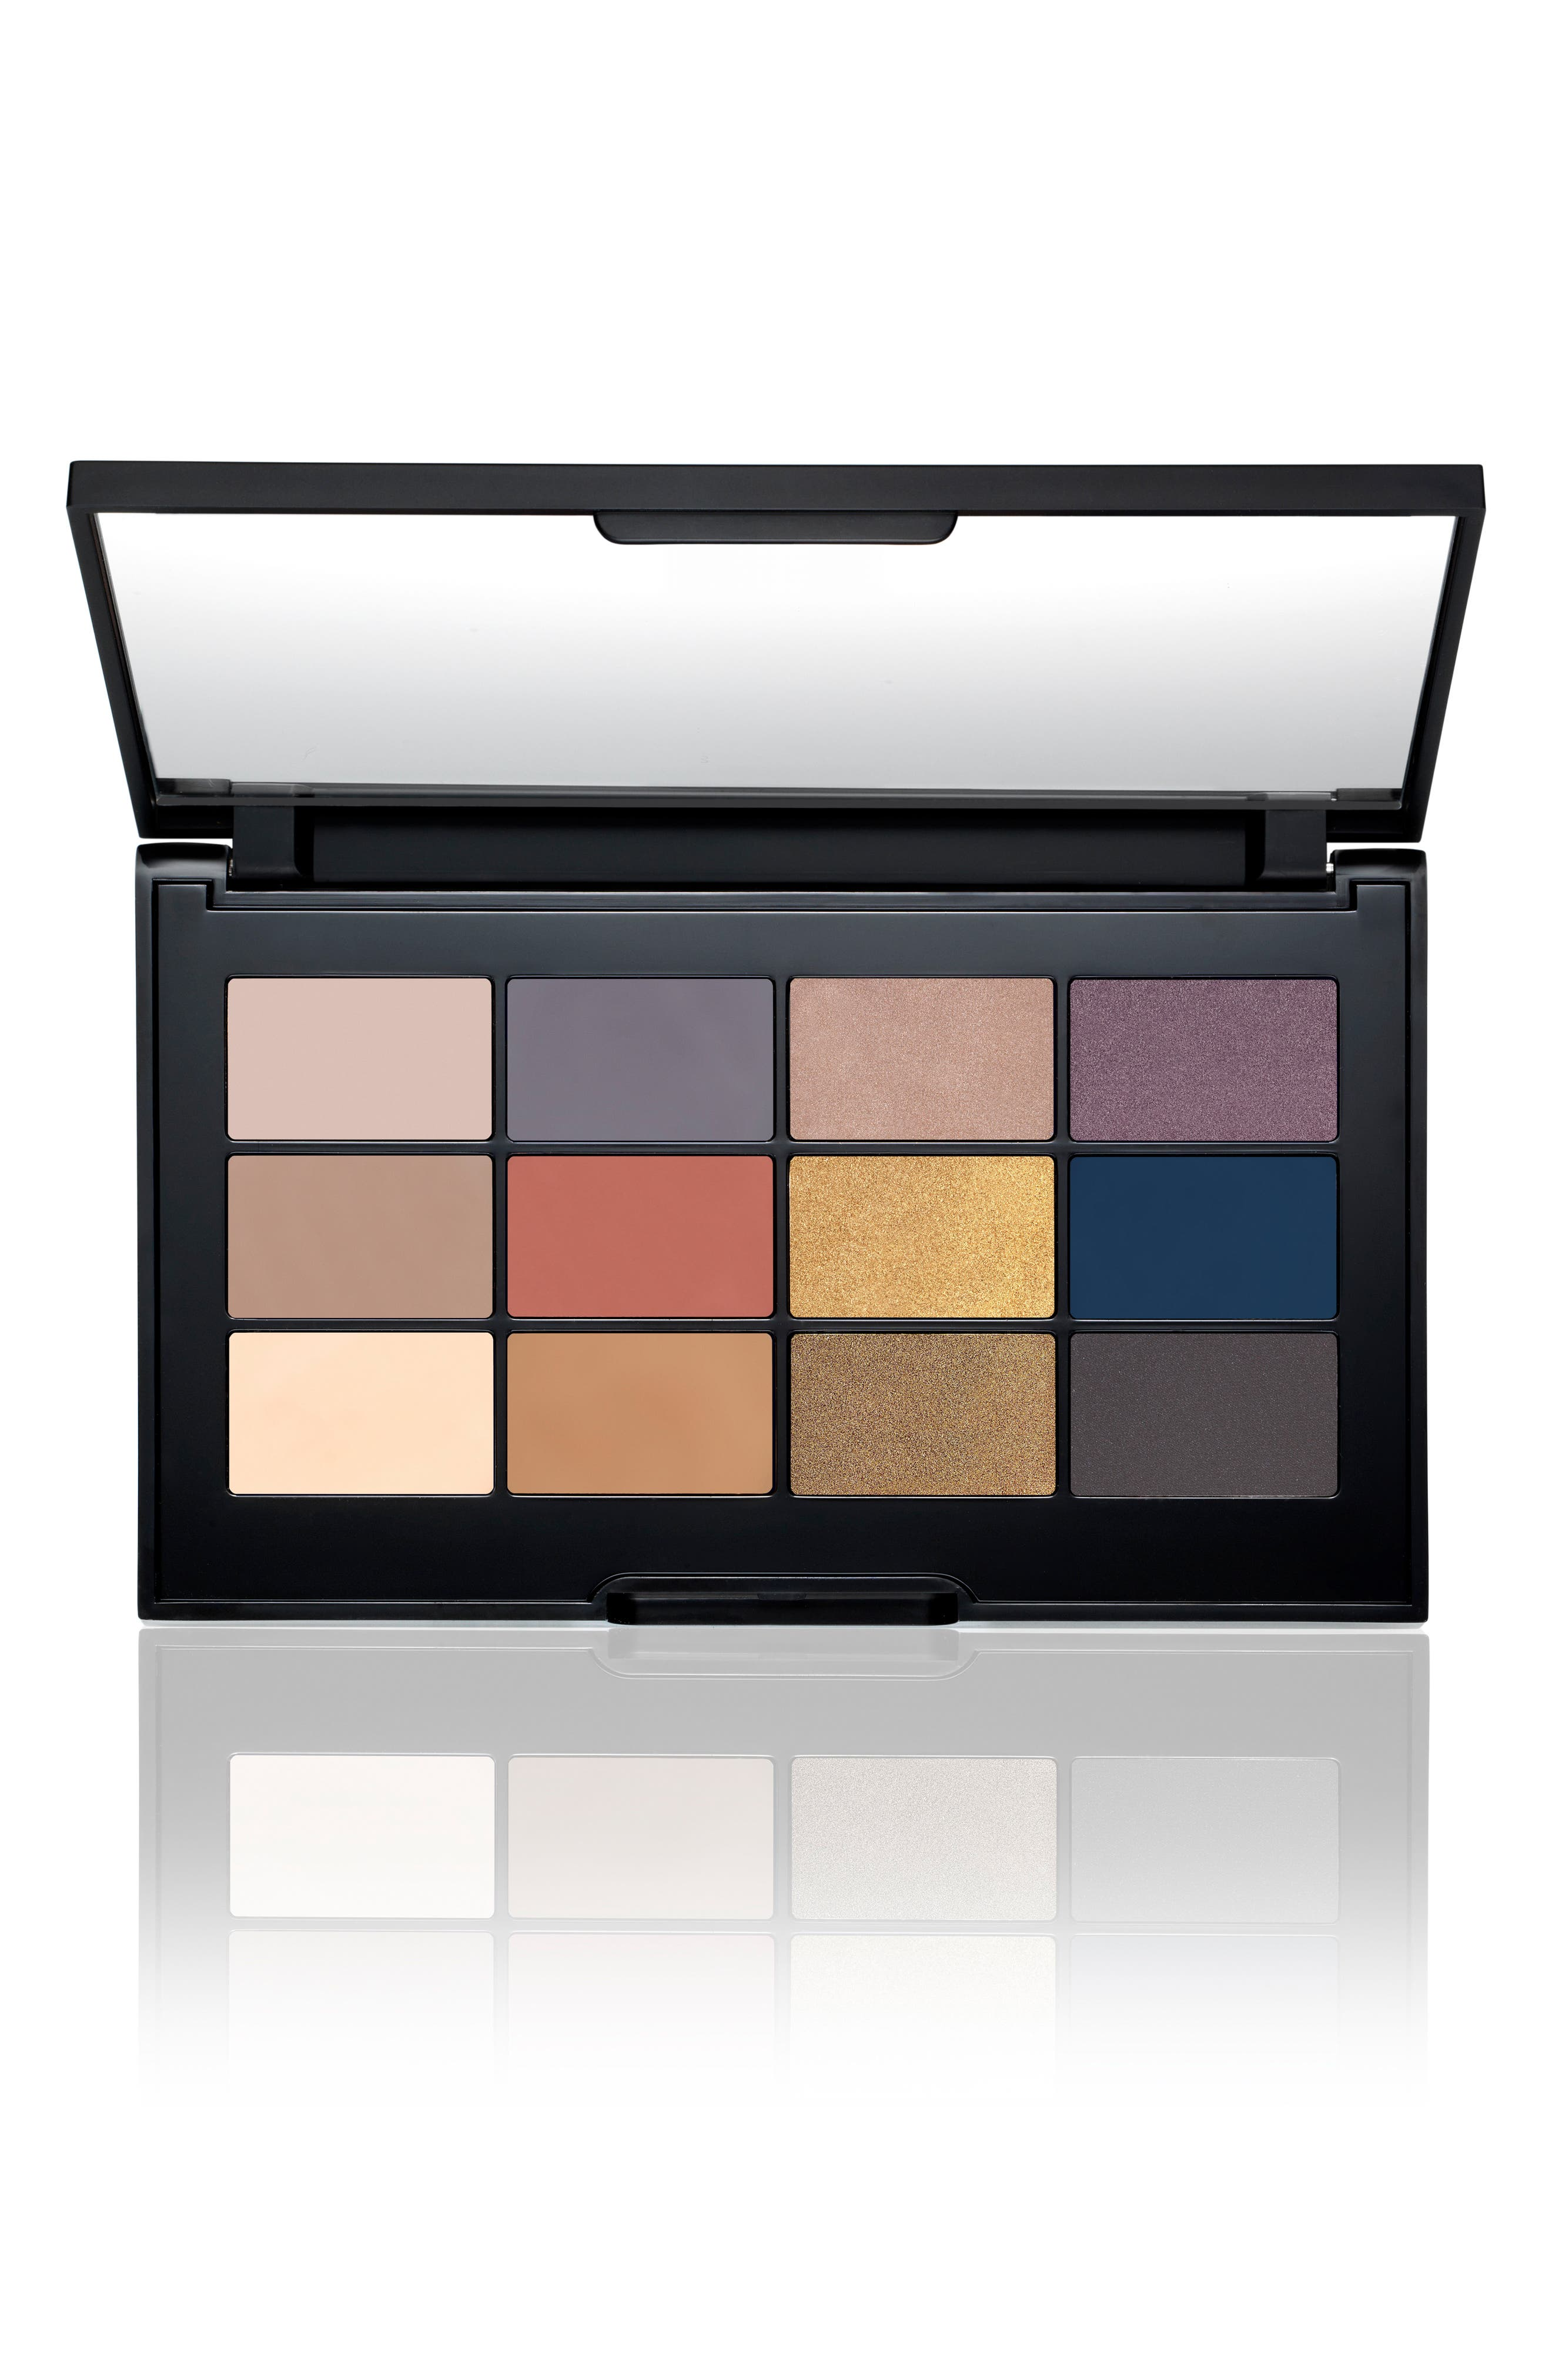 Laura Geller Beauty New York Downtown Cool Eyeshadow Palette